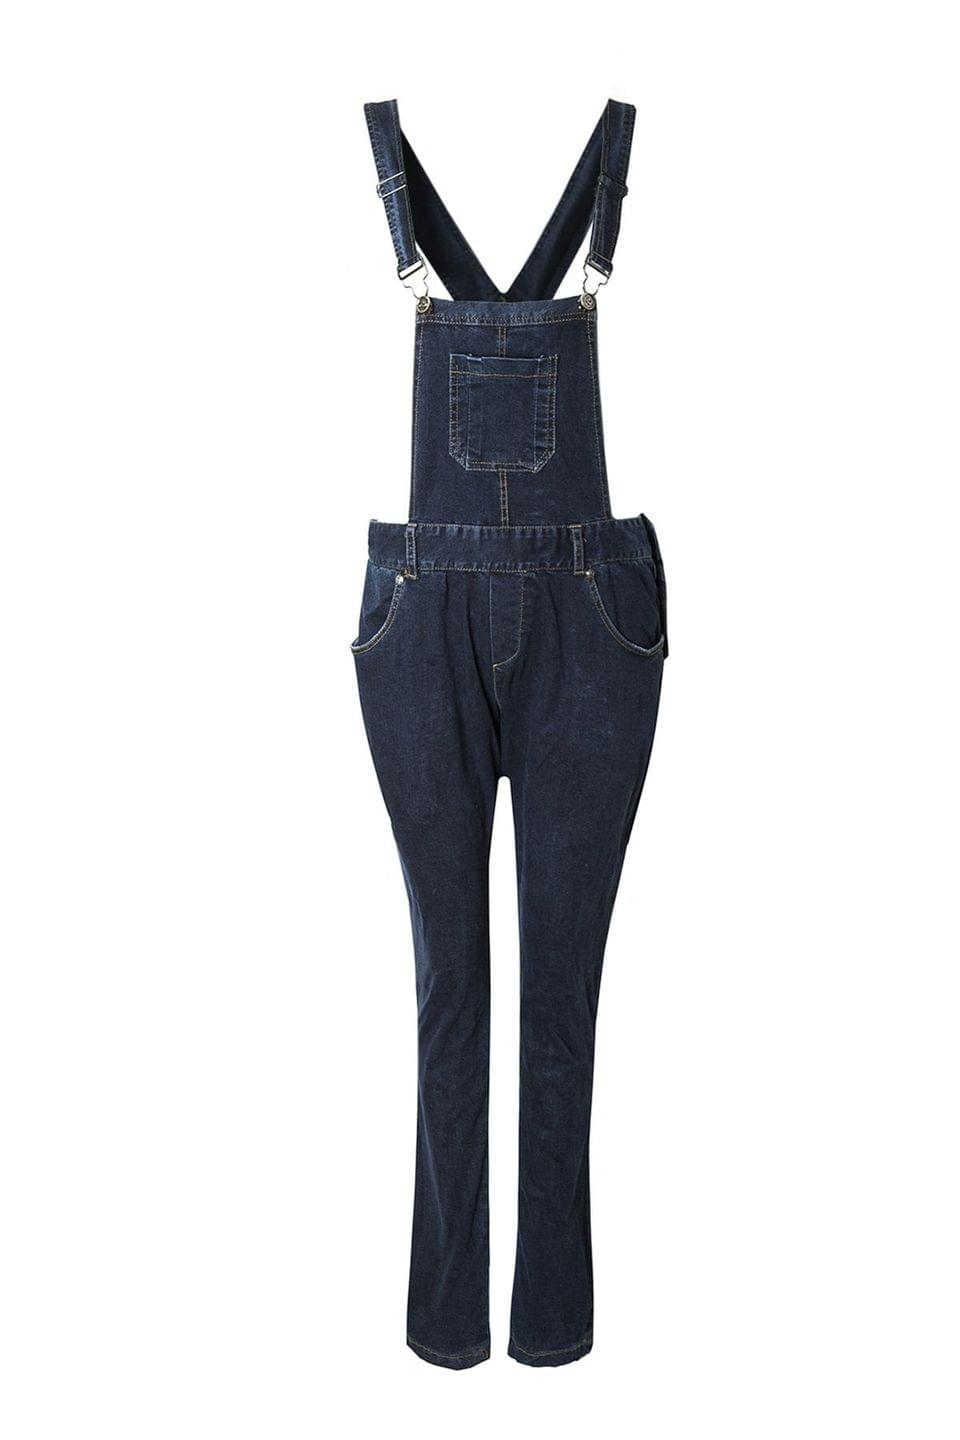 Women's Blue Black Denim Dungarees - Deep Blue M